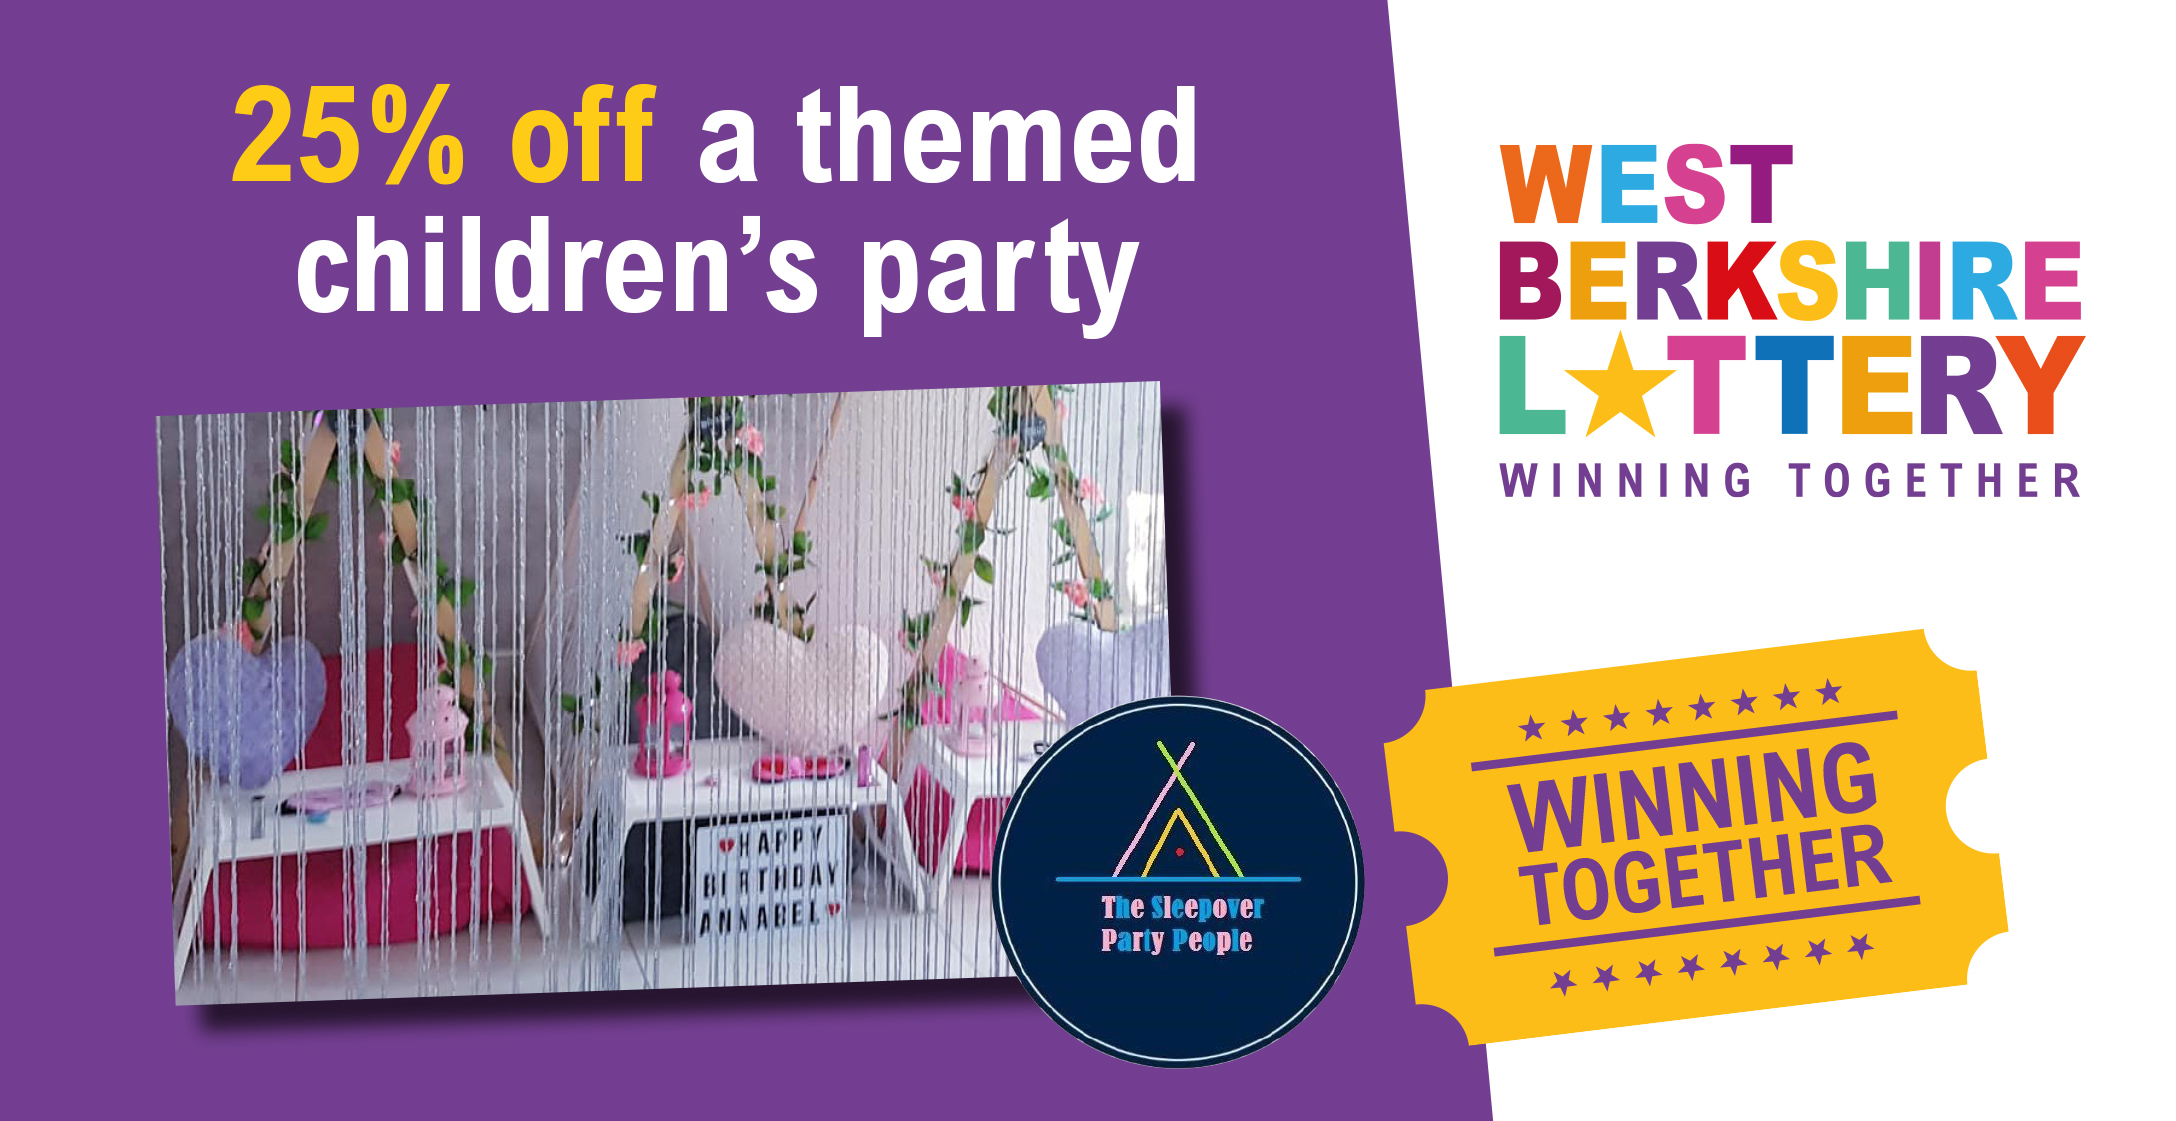 Treat your little ones to a magical themed party with 25% off!